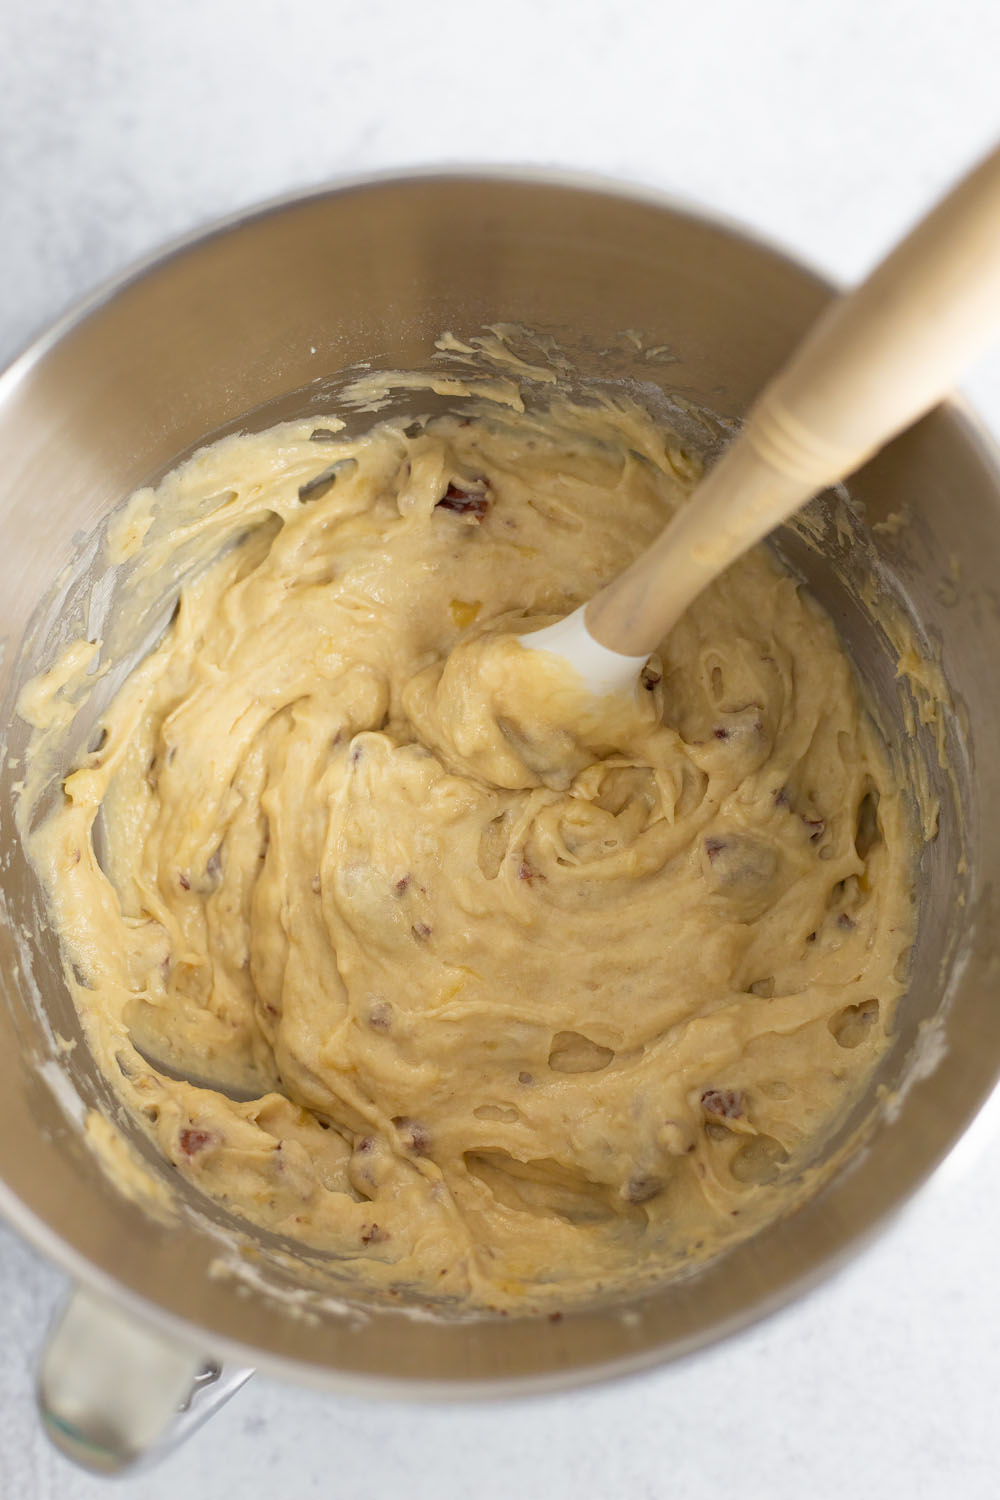 banana bread mixture